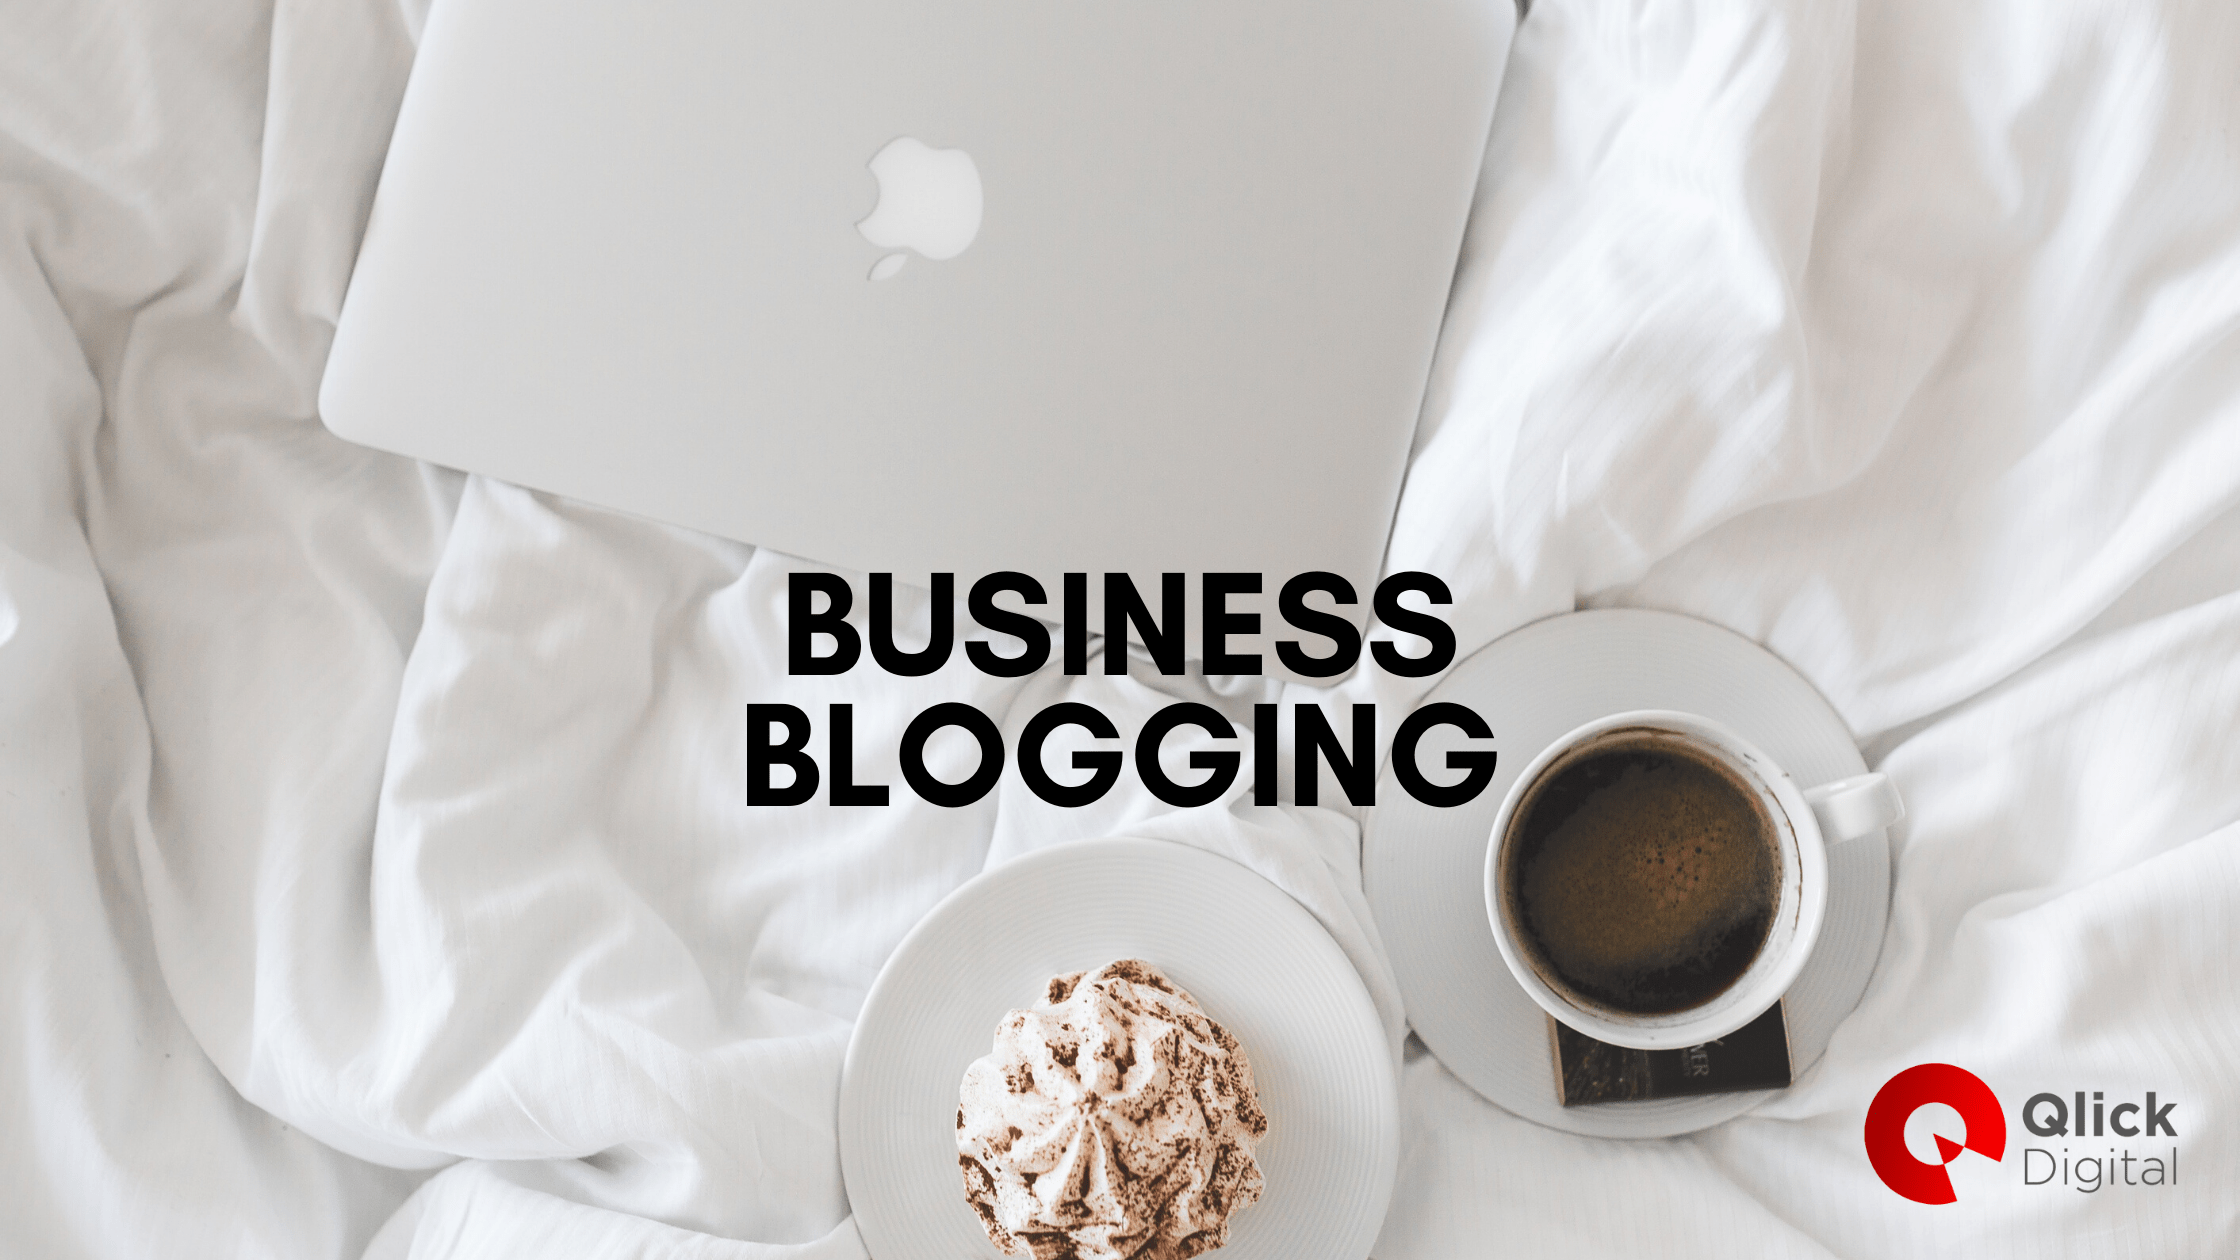 Business Blogging To Drive Traffic & Sales